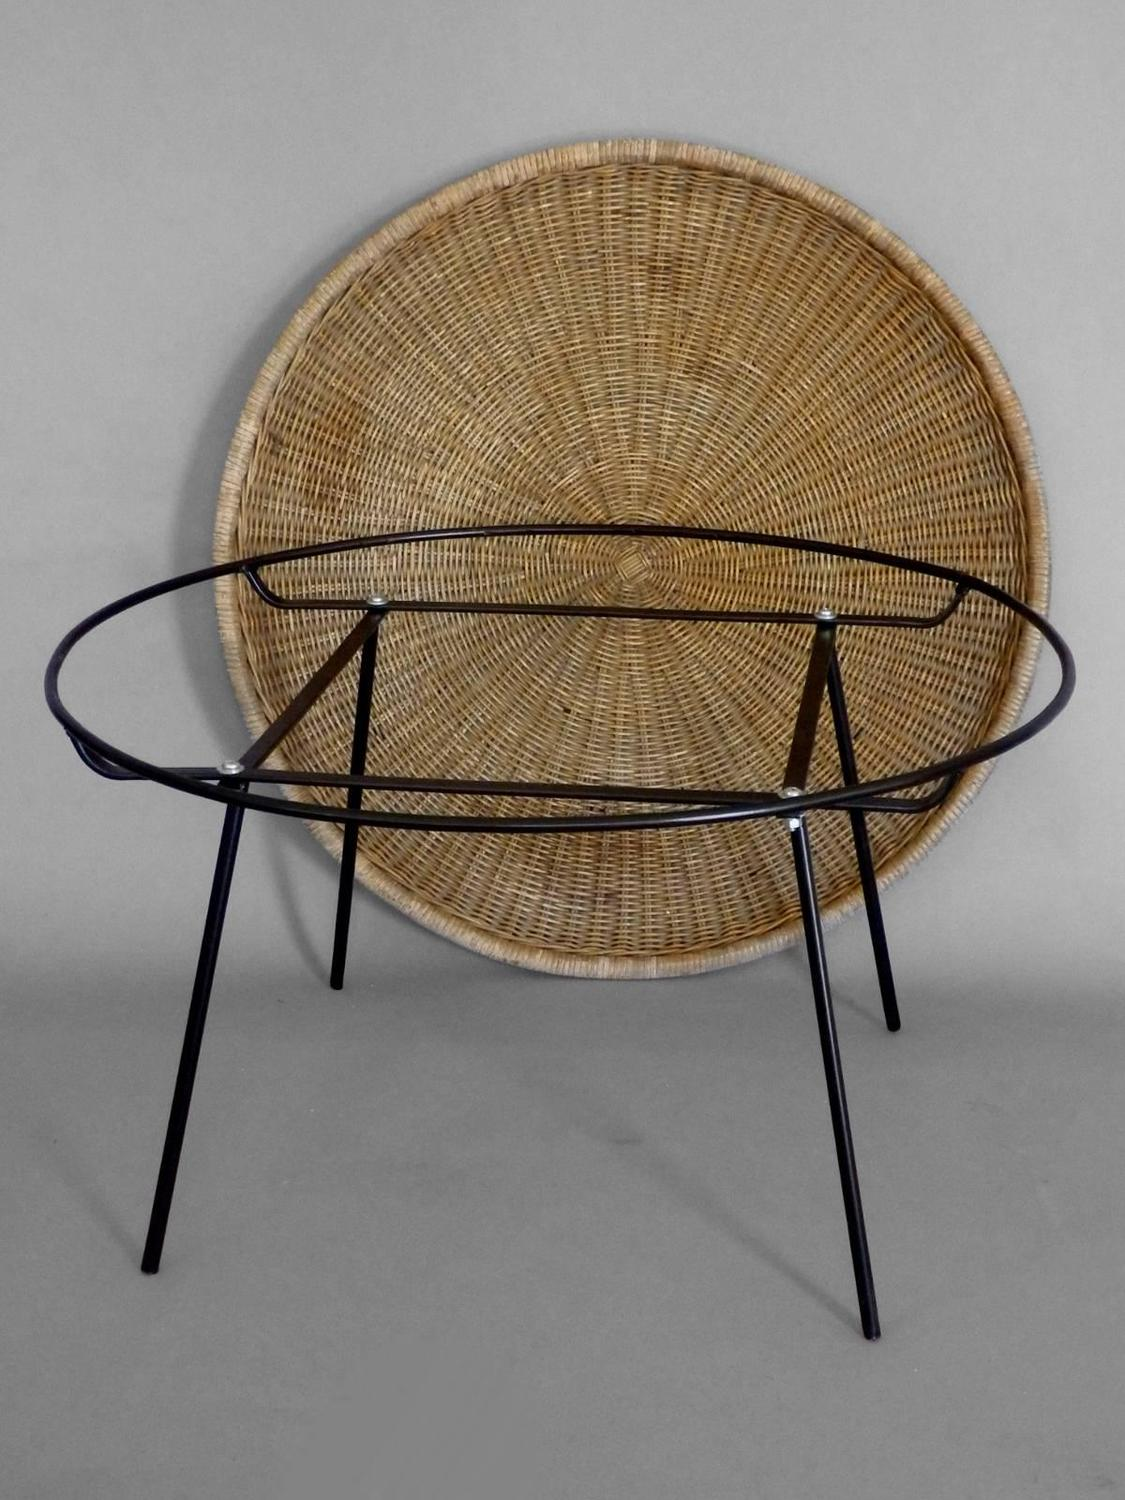 Rattan on wrought iron catch all coffee table for sale at 1stdibs Coffee table baskets